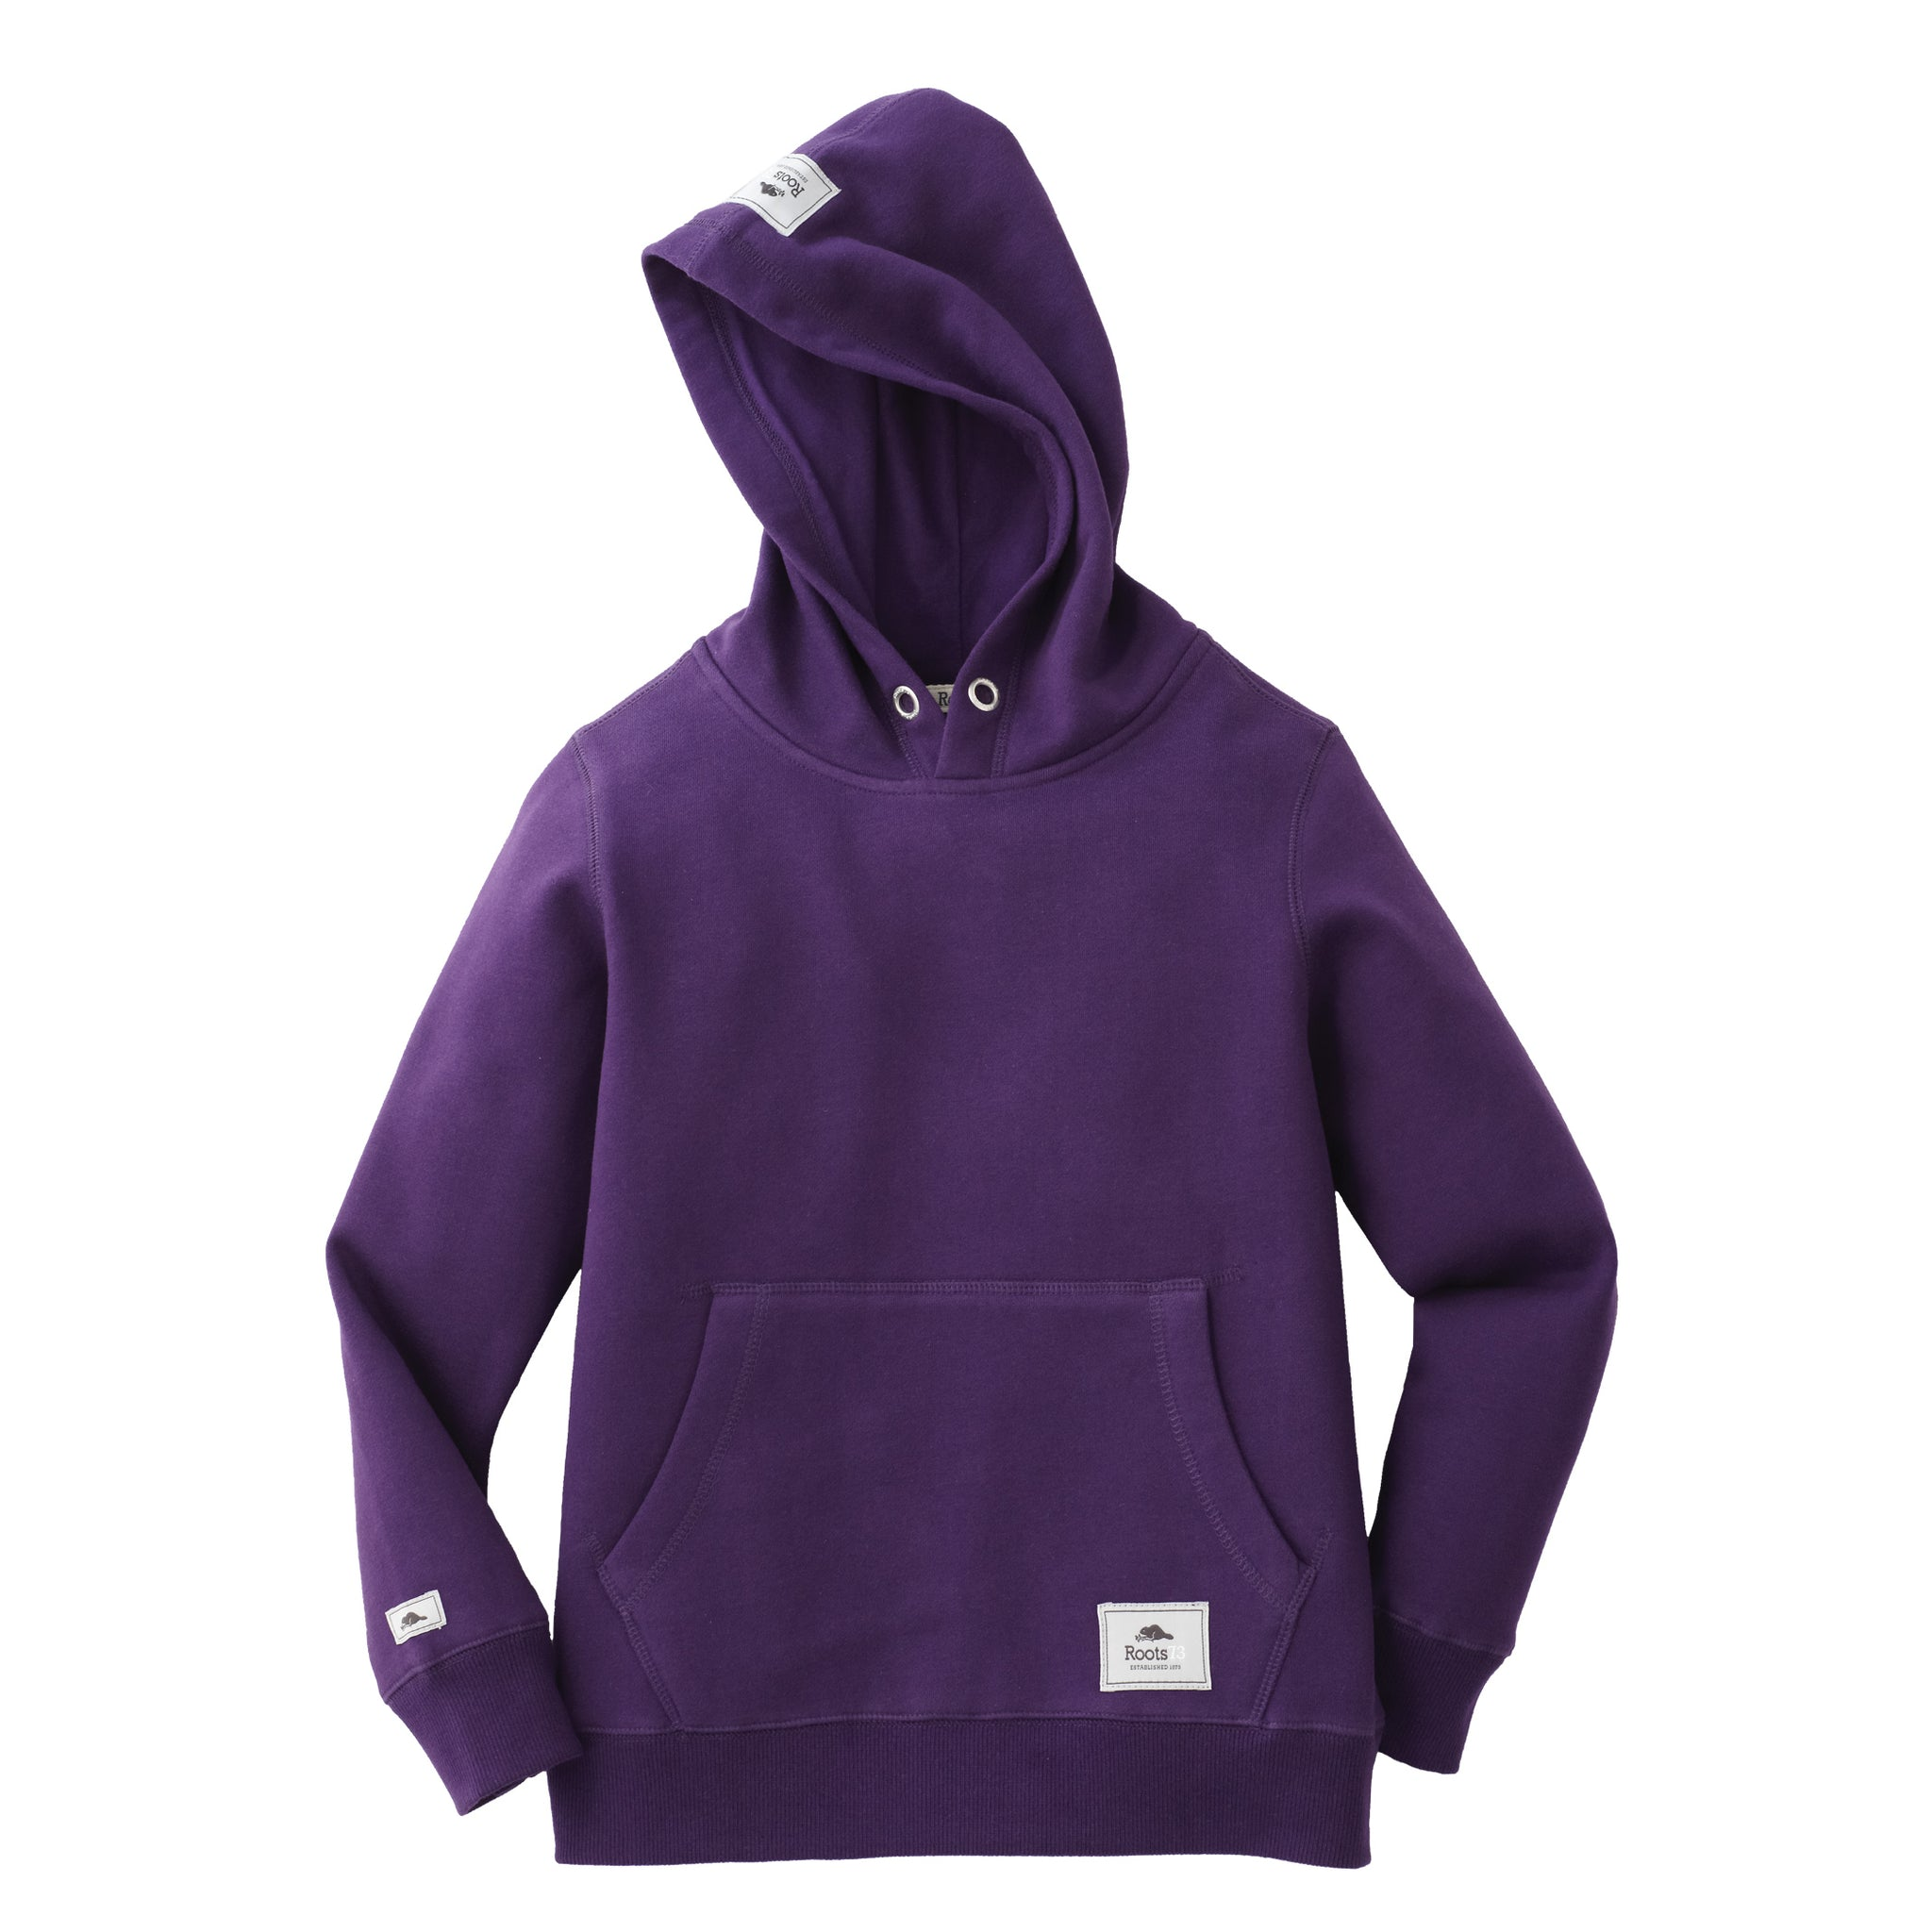 ROOTS73 YOUTH CRESTON FLEECE HOODY